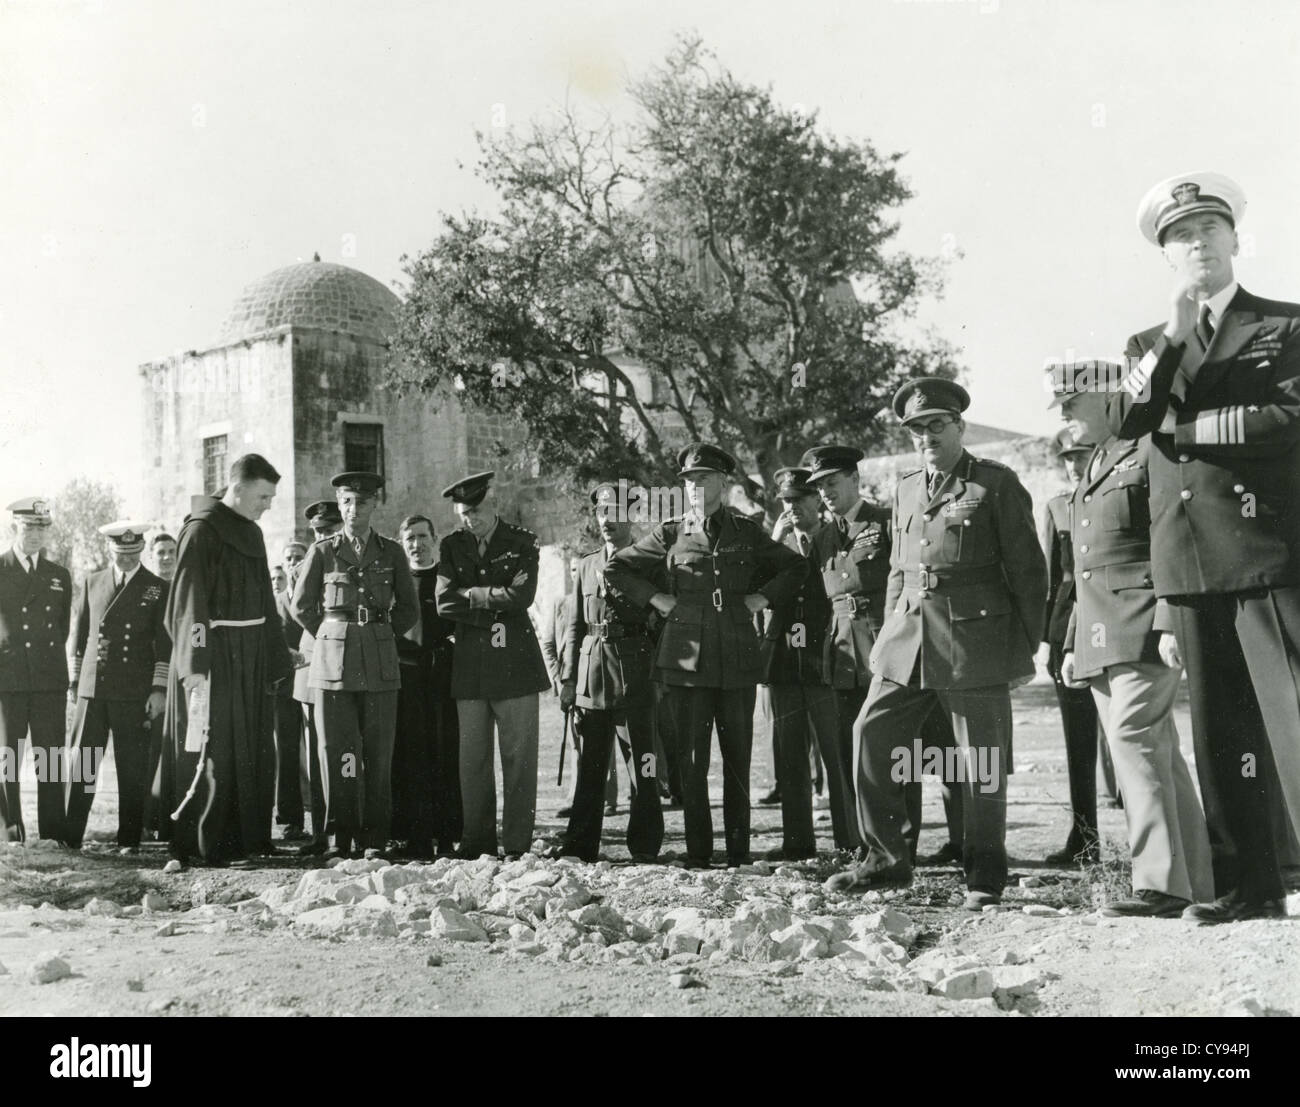 ALLIED LEADERS in Jerusalem on way back from Tehran Conference, December, 1943.See Description below for names. - Stock Image